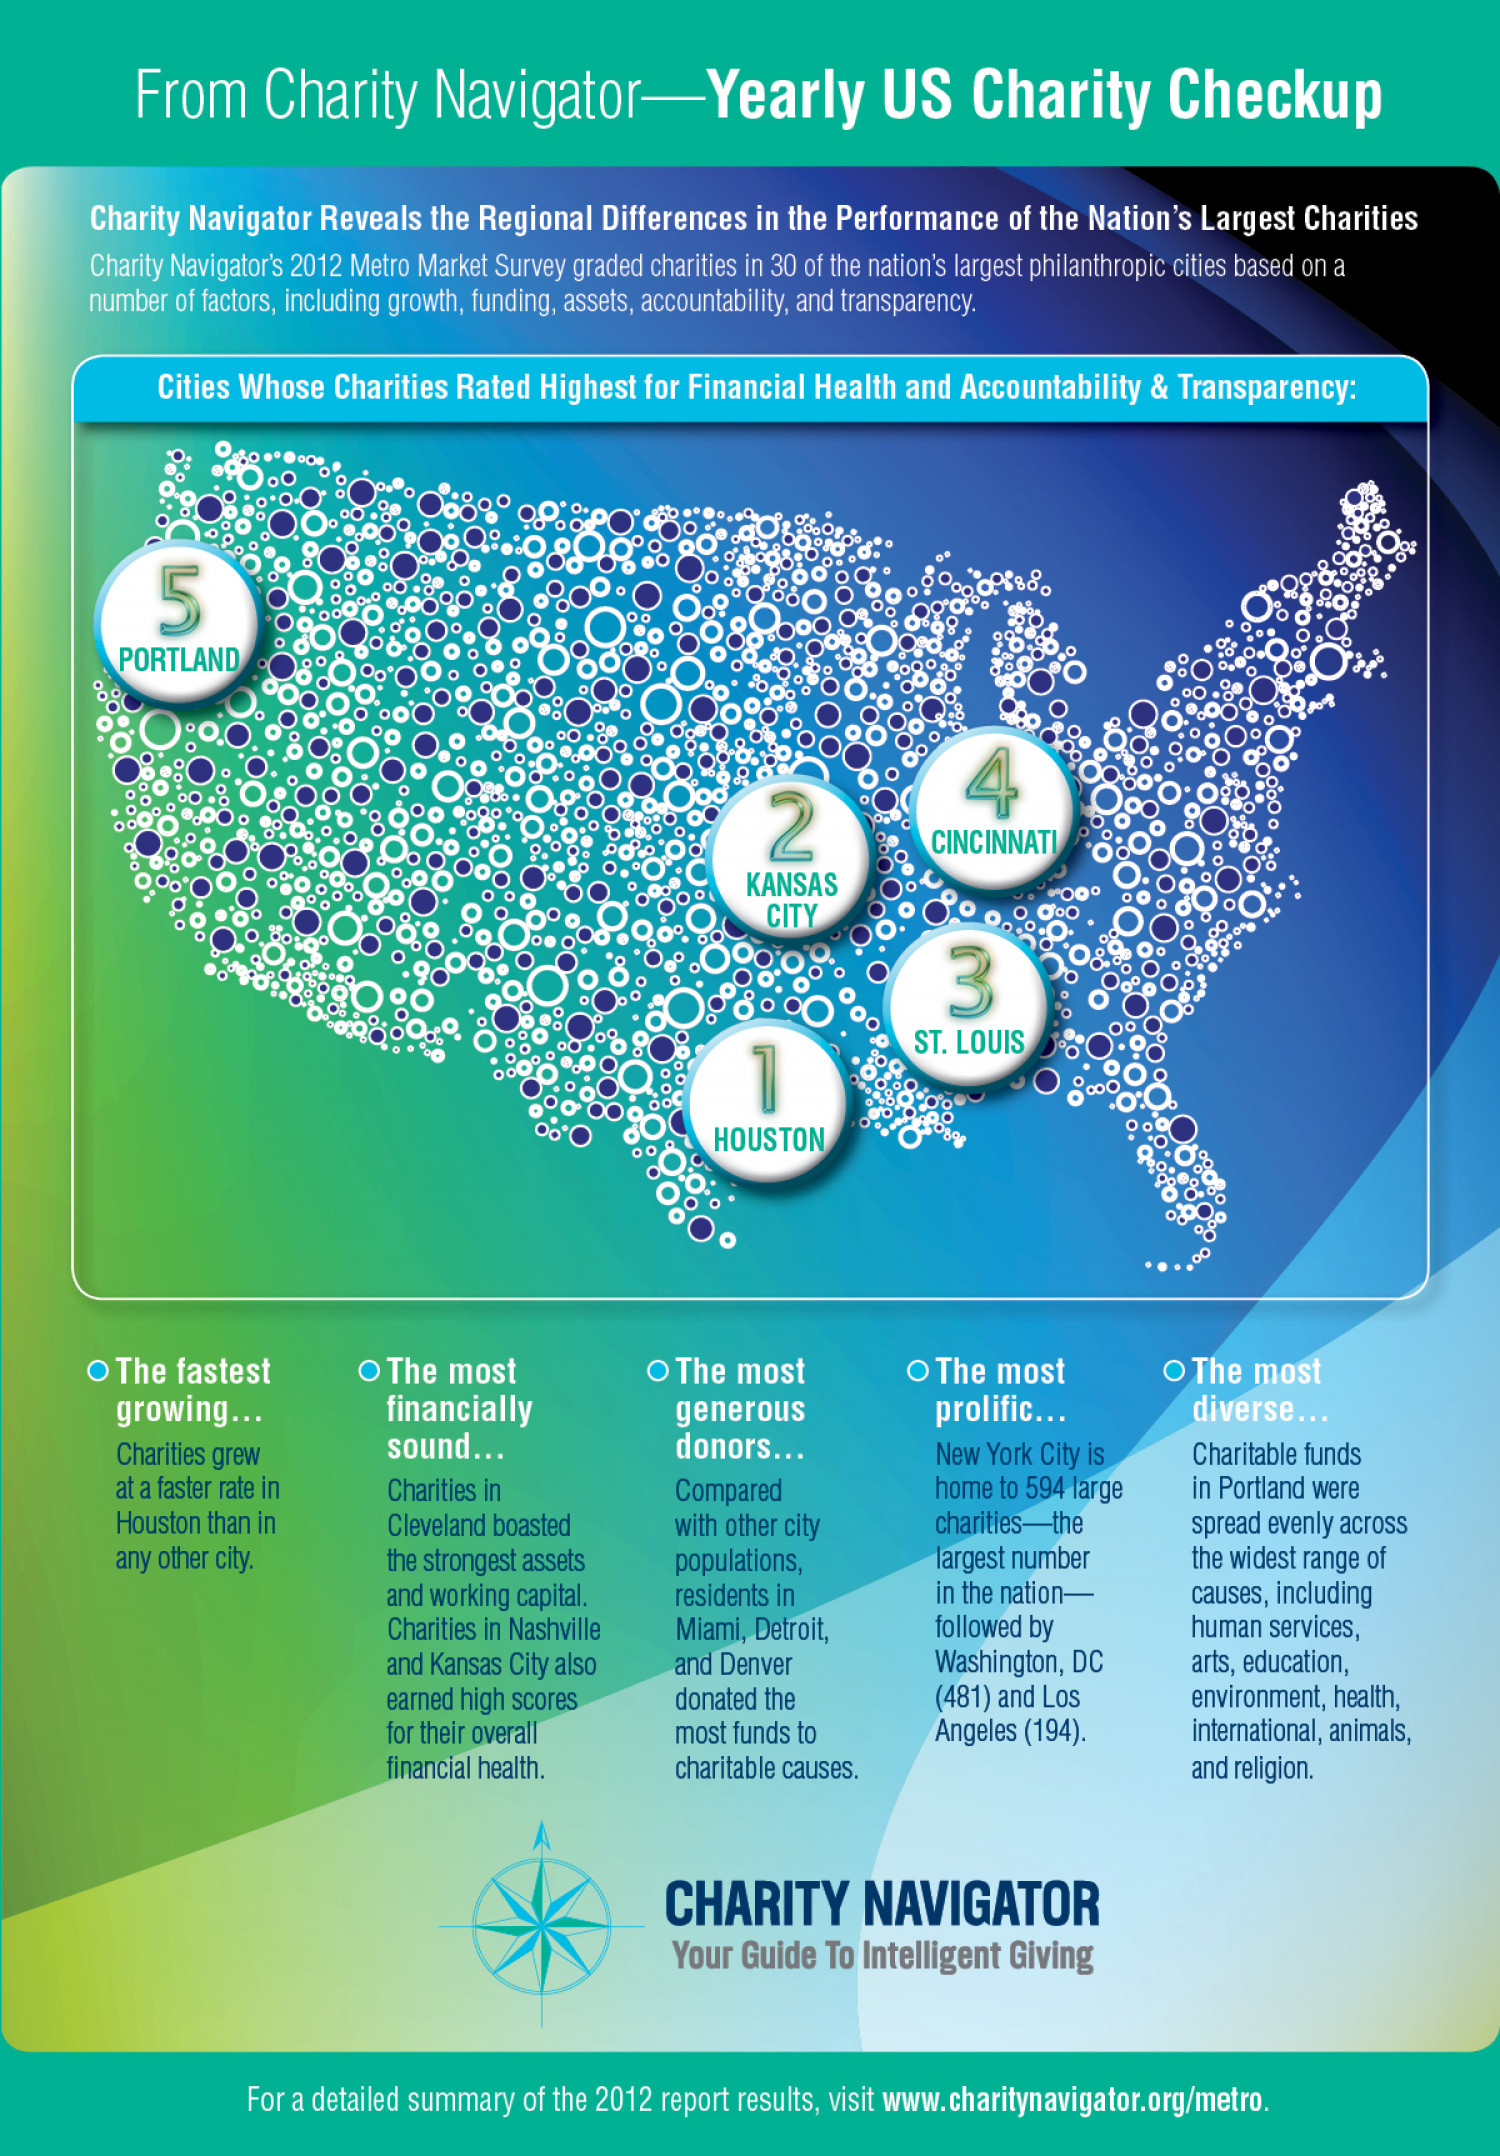 From Charity Navigator - Yearly US Charity Checkup Infographic